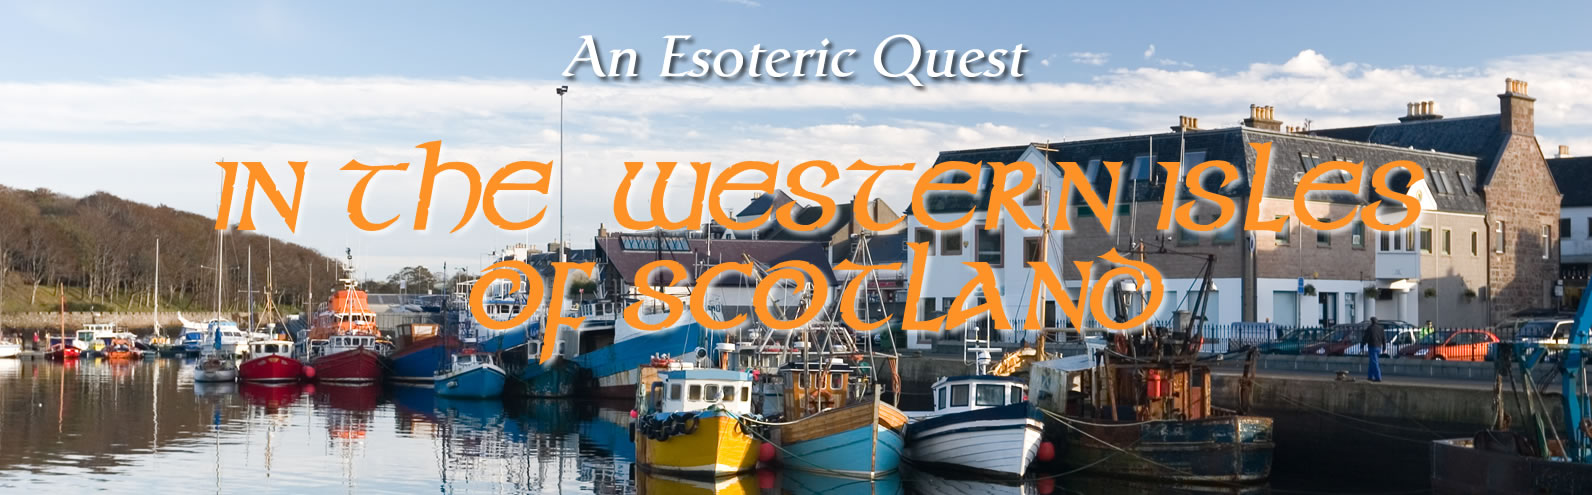 esoteric-quest-scotland-slider3